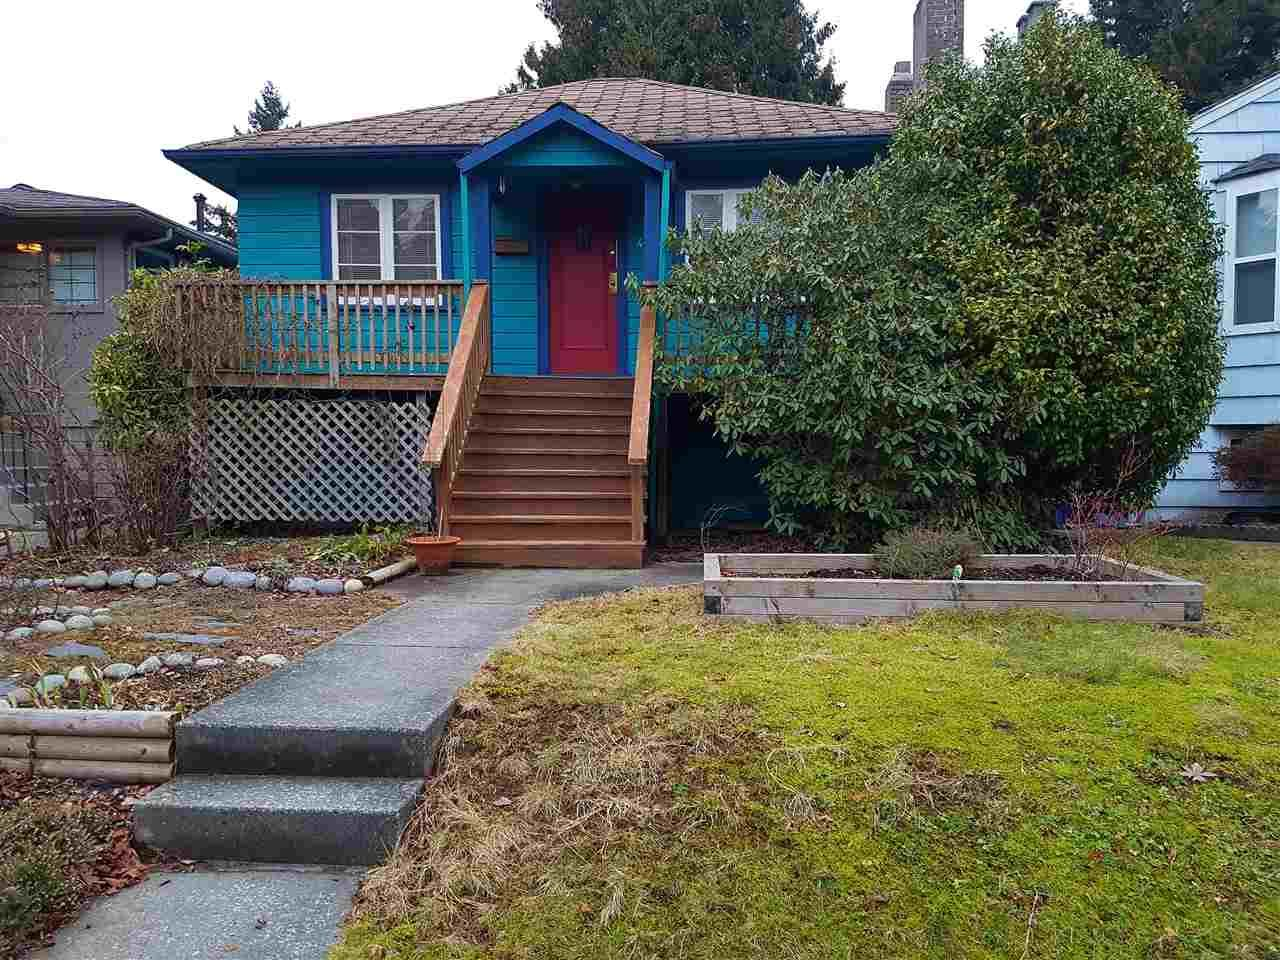 """Main Photo: 4433 W 16TH Avenue in Vancouver: Point Grey House for sale in """"West Point Grey"""" (Vancouver West)  : MLS®# R2137139"""